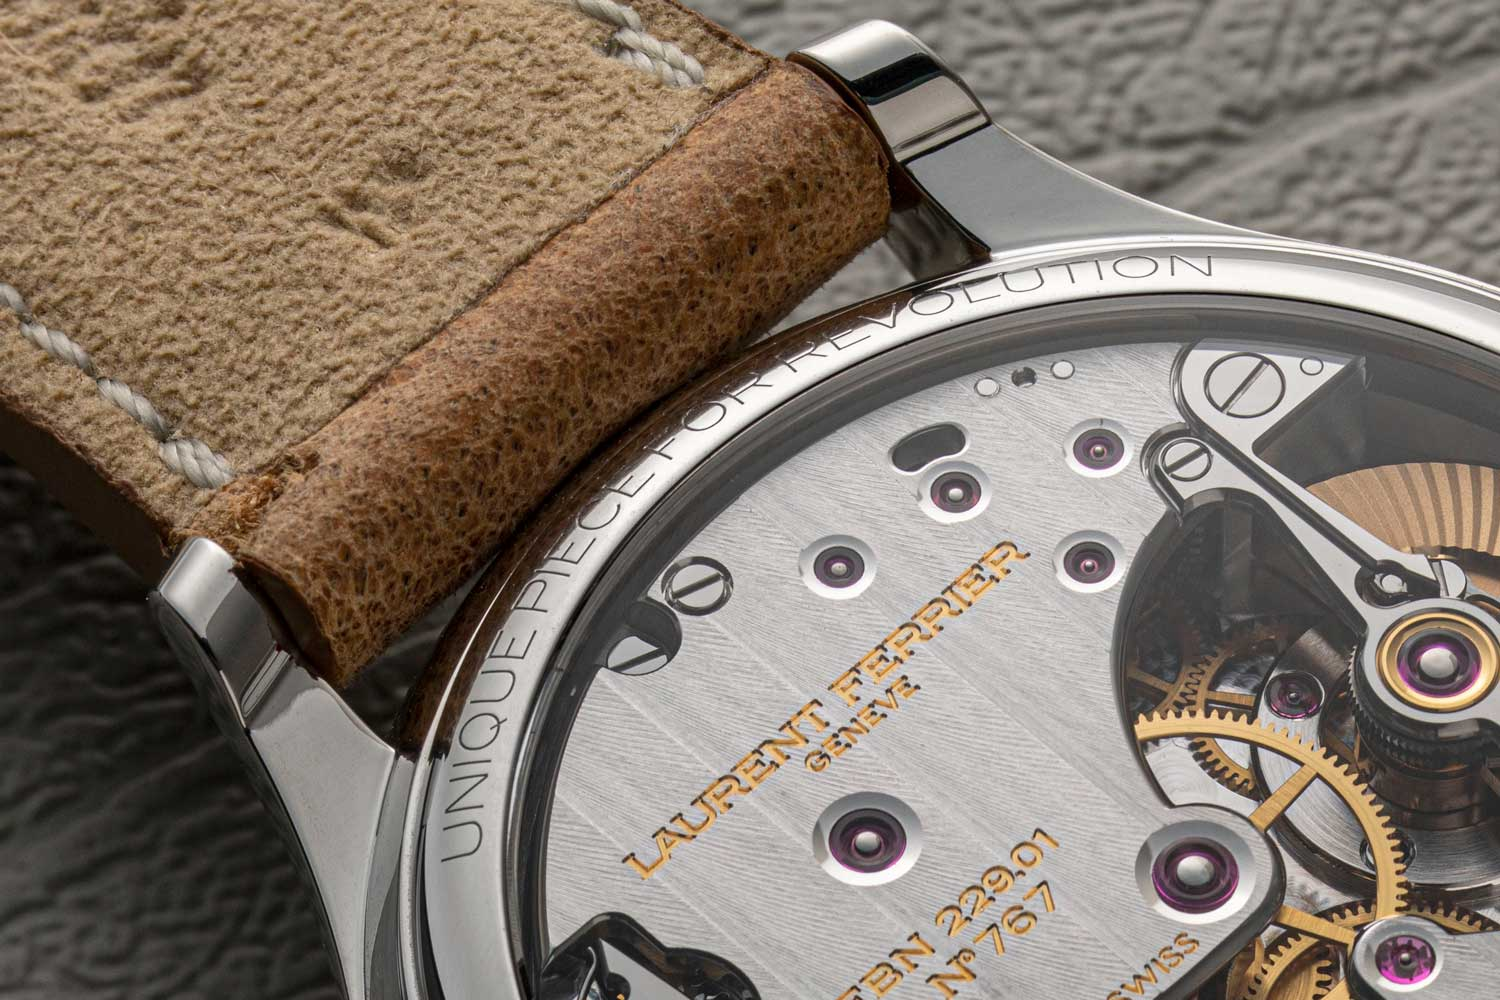 In full disclosure, the Laurent Ferrier Steel Galet Micro-Rotor Salmon Dial pièce unique for Revolution was a prototype for consideration while we were deciding between this and the Laurent Ferrier Classic Origin for Revolution & The Rake, launched as a 12-piece limited edition in 2020 (©Revolution)